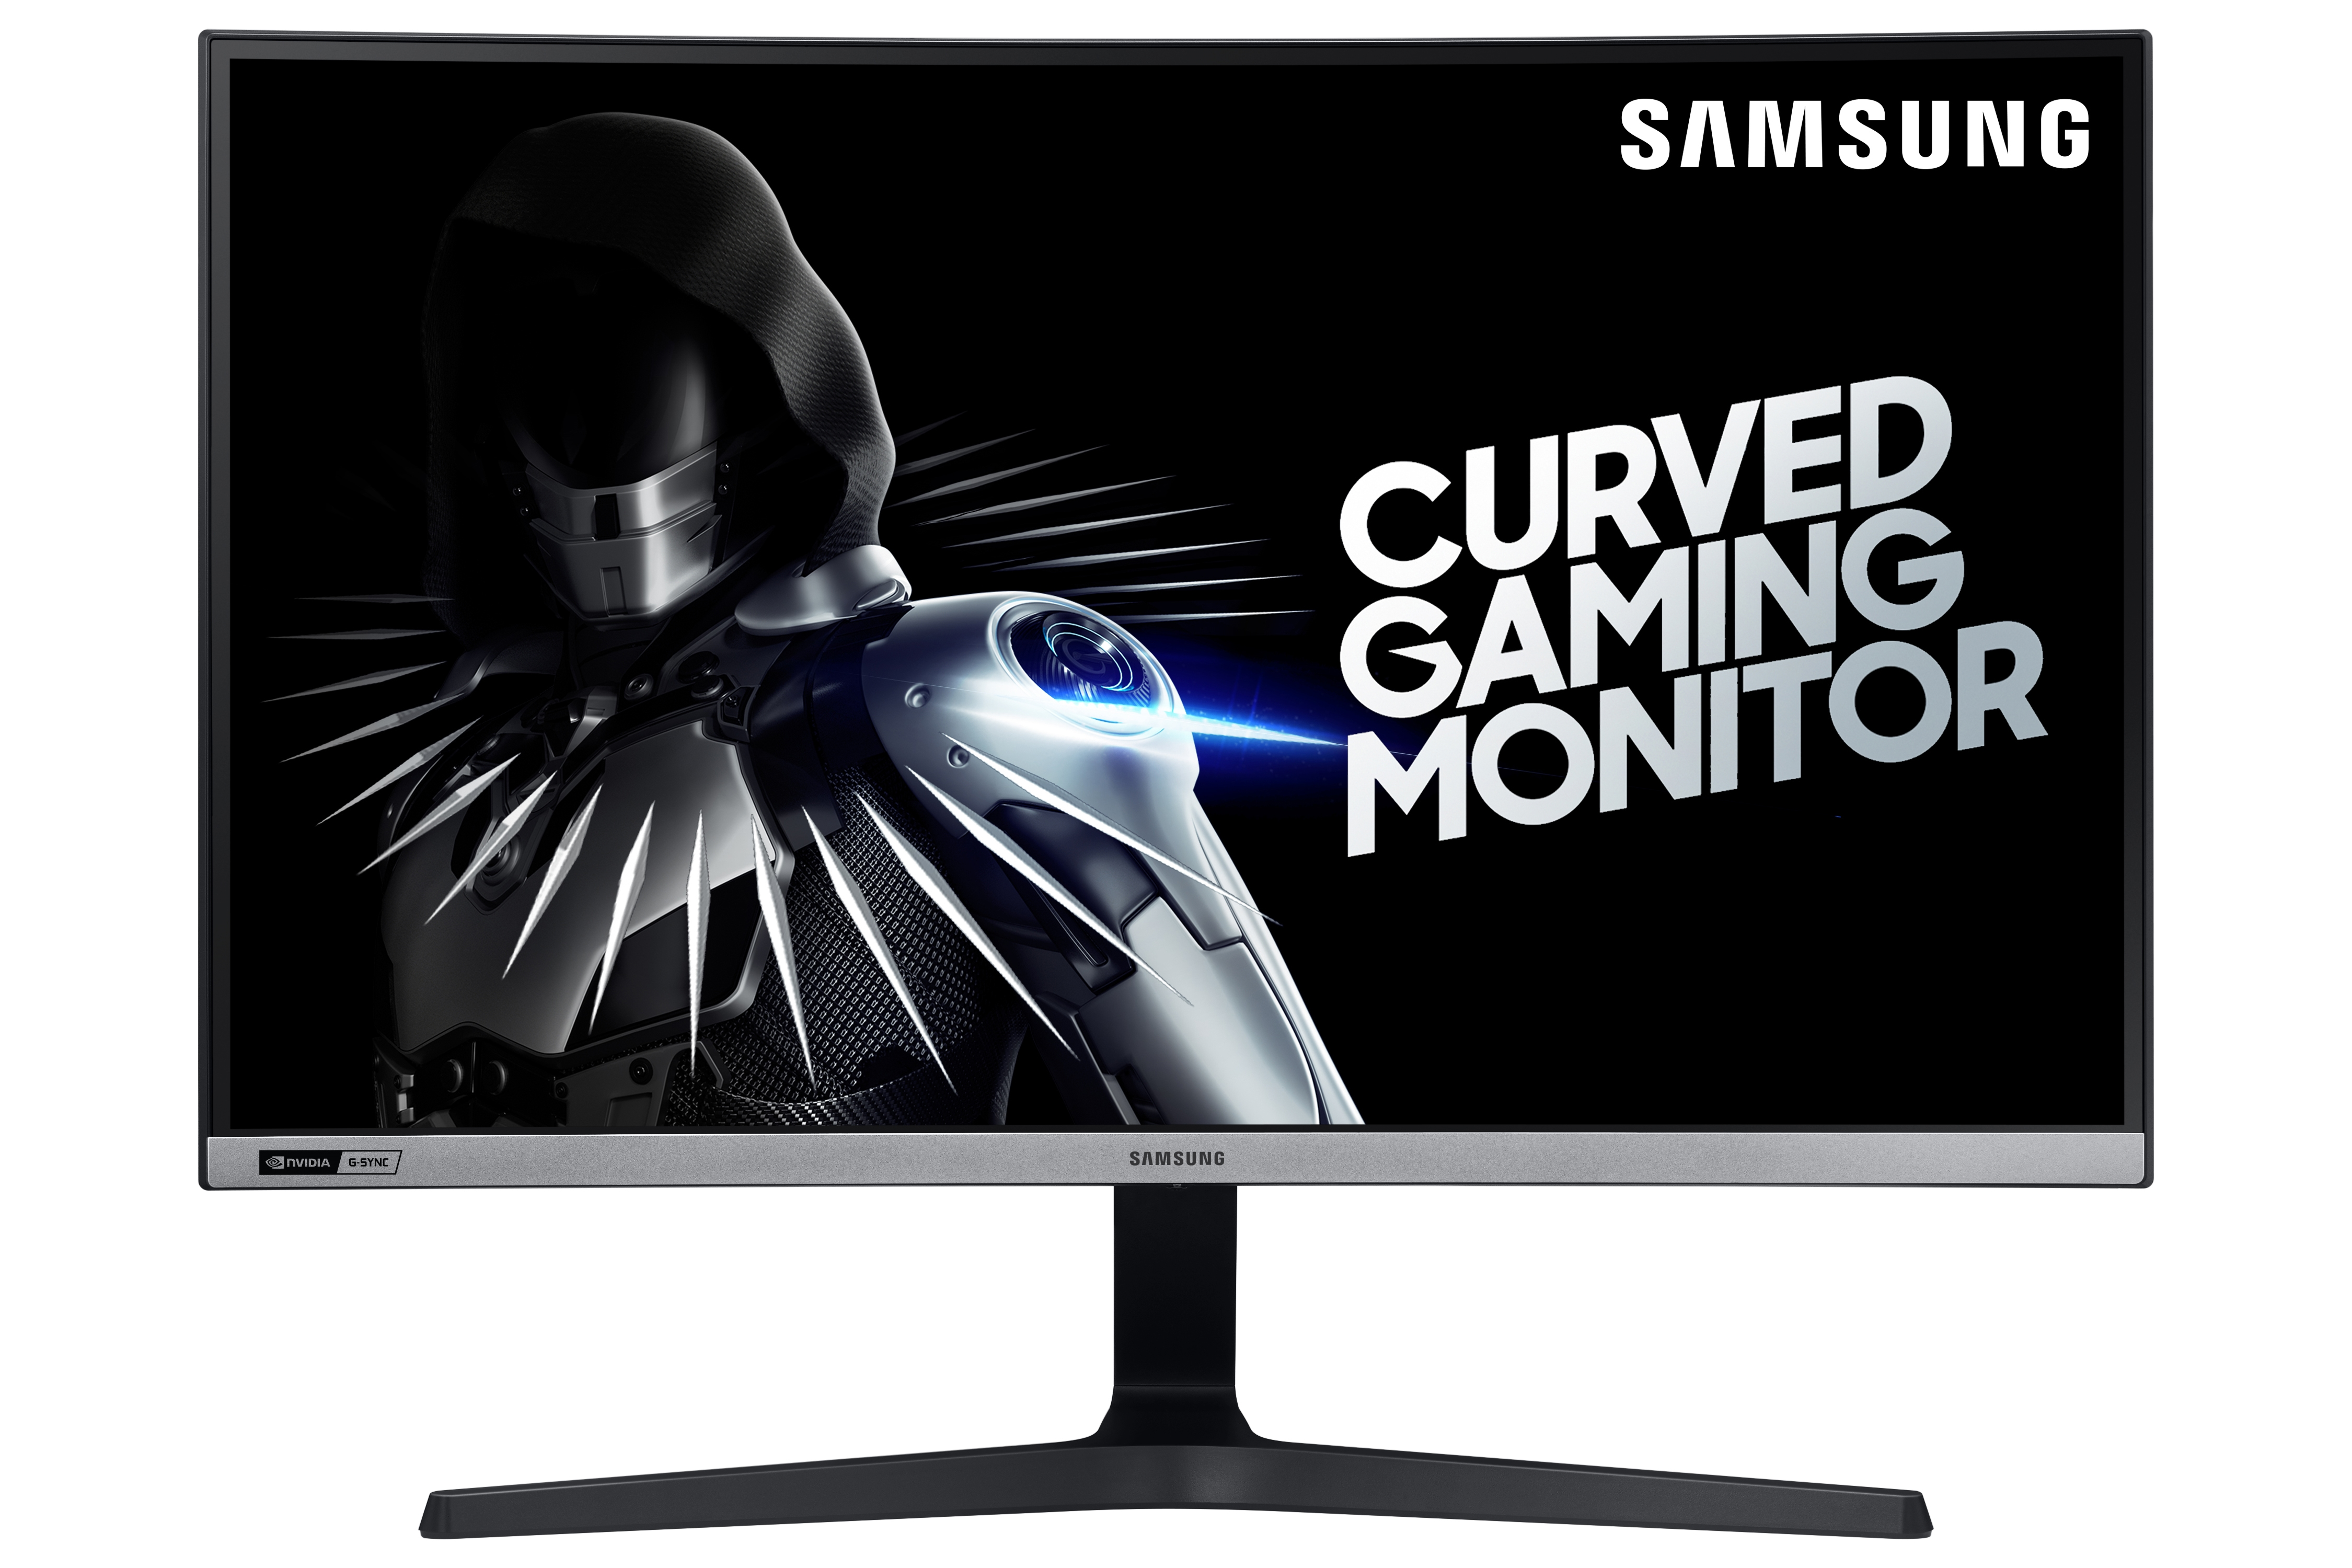 """27"""" CRG5 240Hz Curved Gaming Monitor"""